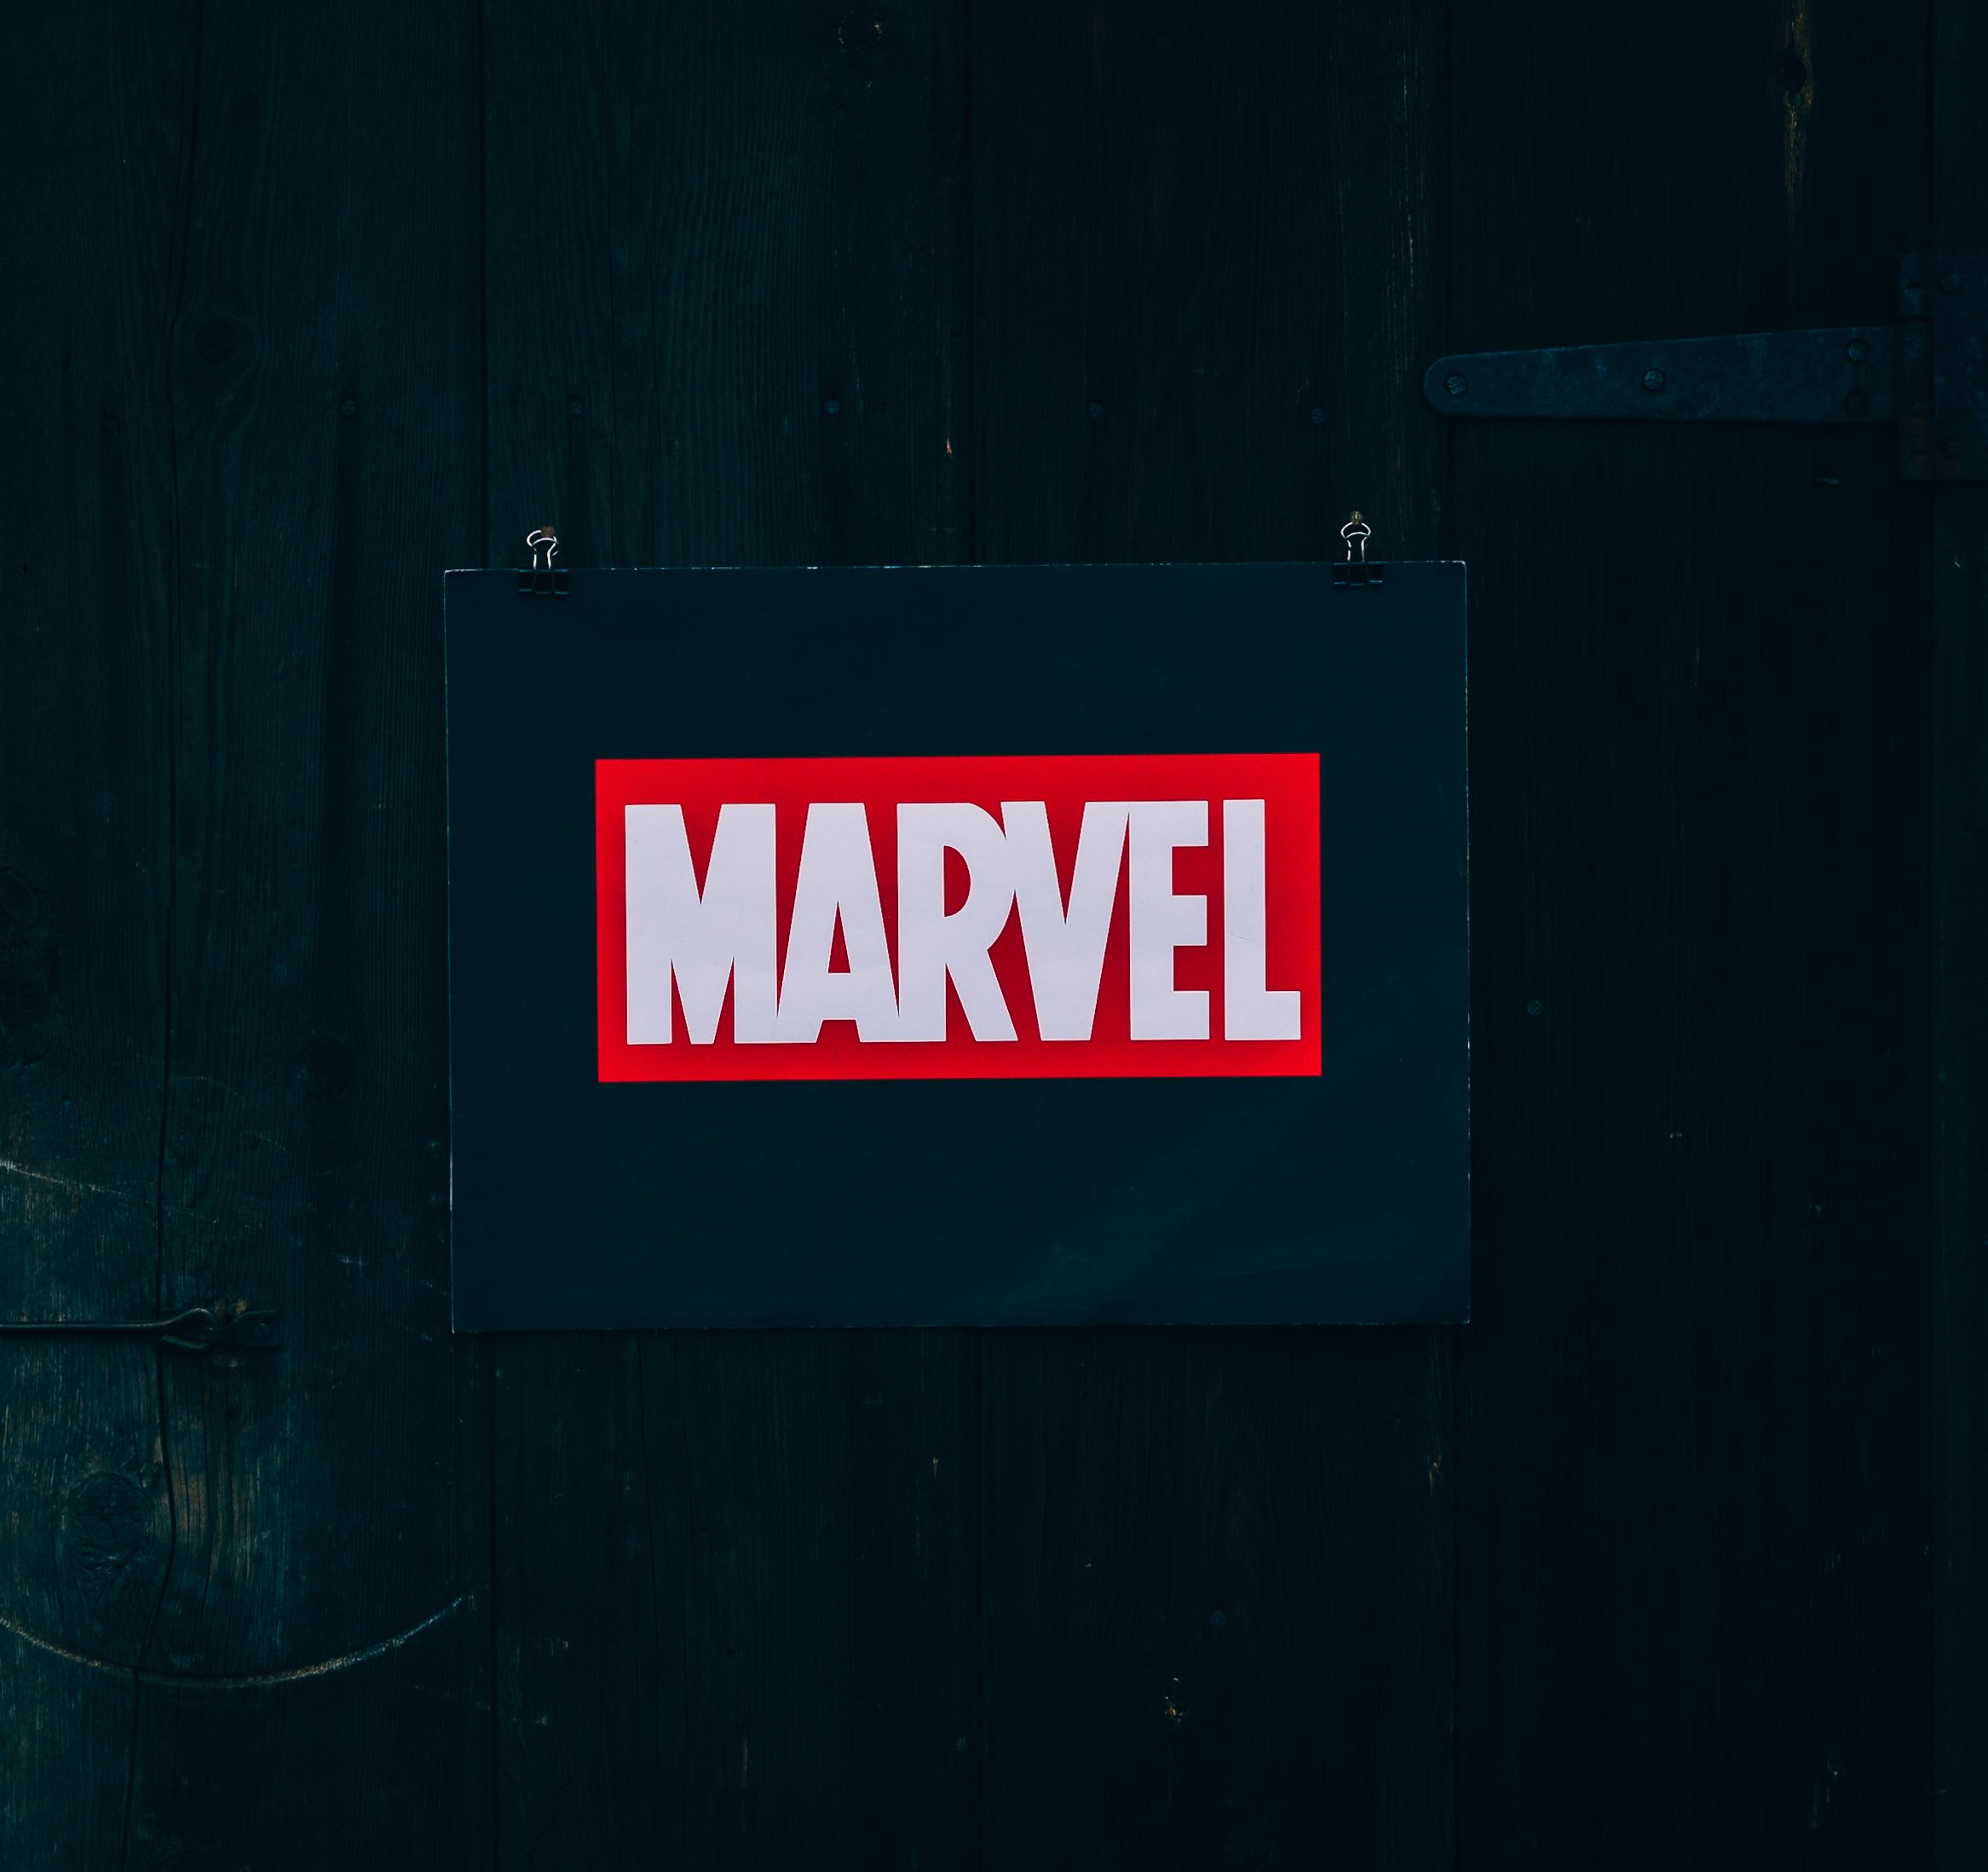 Marvel Sign